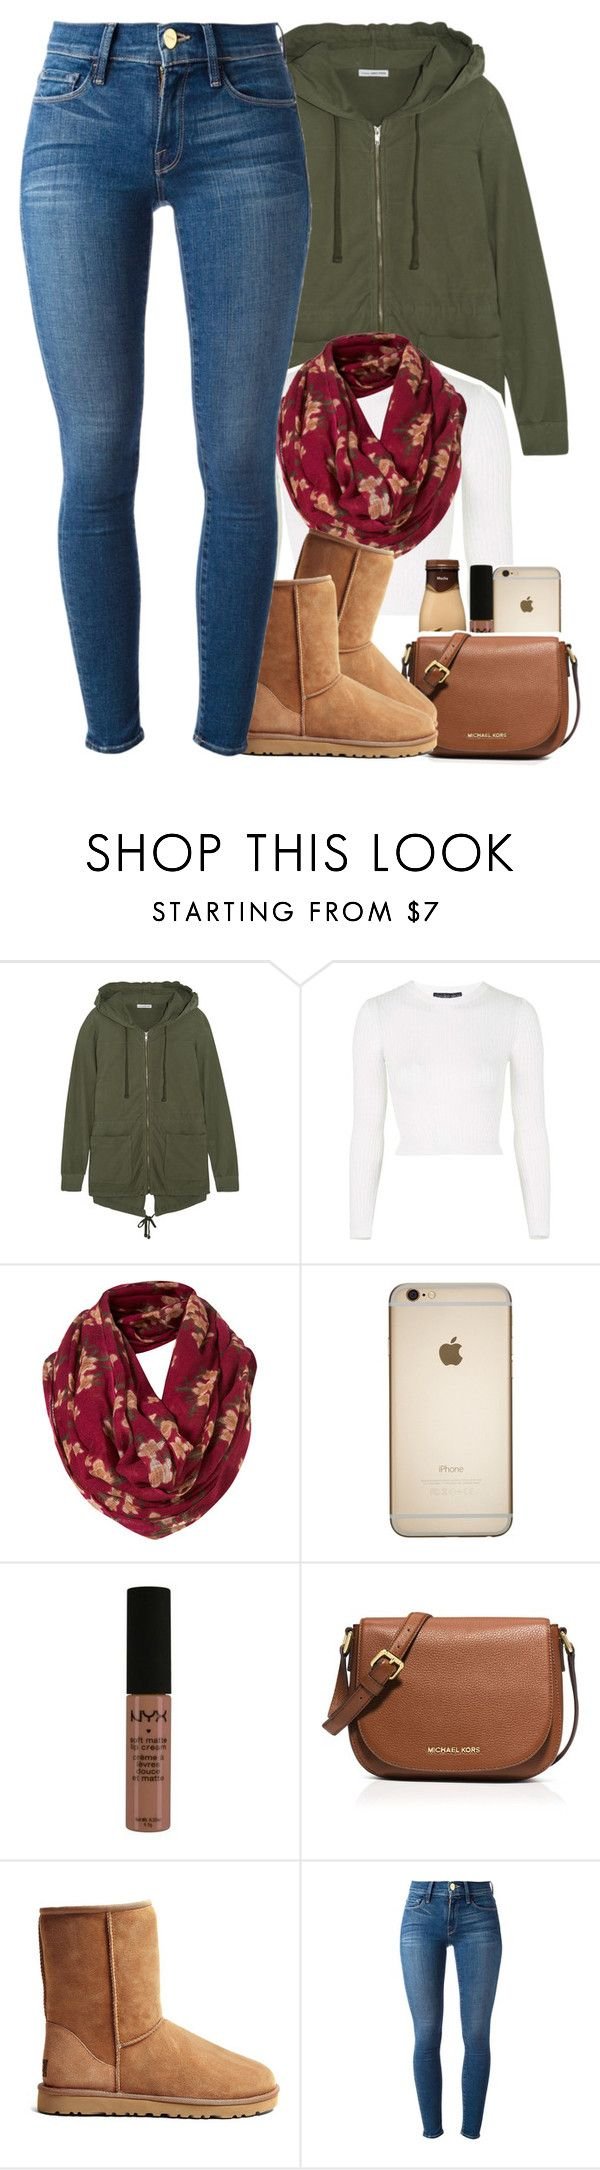 """""""sorry I haven't been posting ; uni work is keeping me busy"""" by daisym0nste ❤ liked on Polyvore featuring James Perse, Topshop, Mulberry, NYX, MICHAEL Michael Kors, UGG Australia and Frame Denim"""